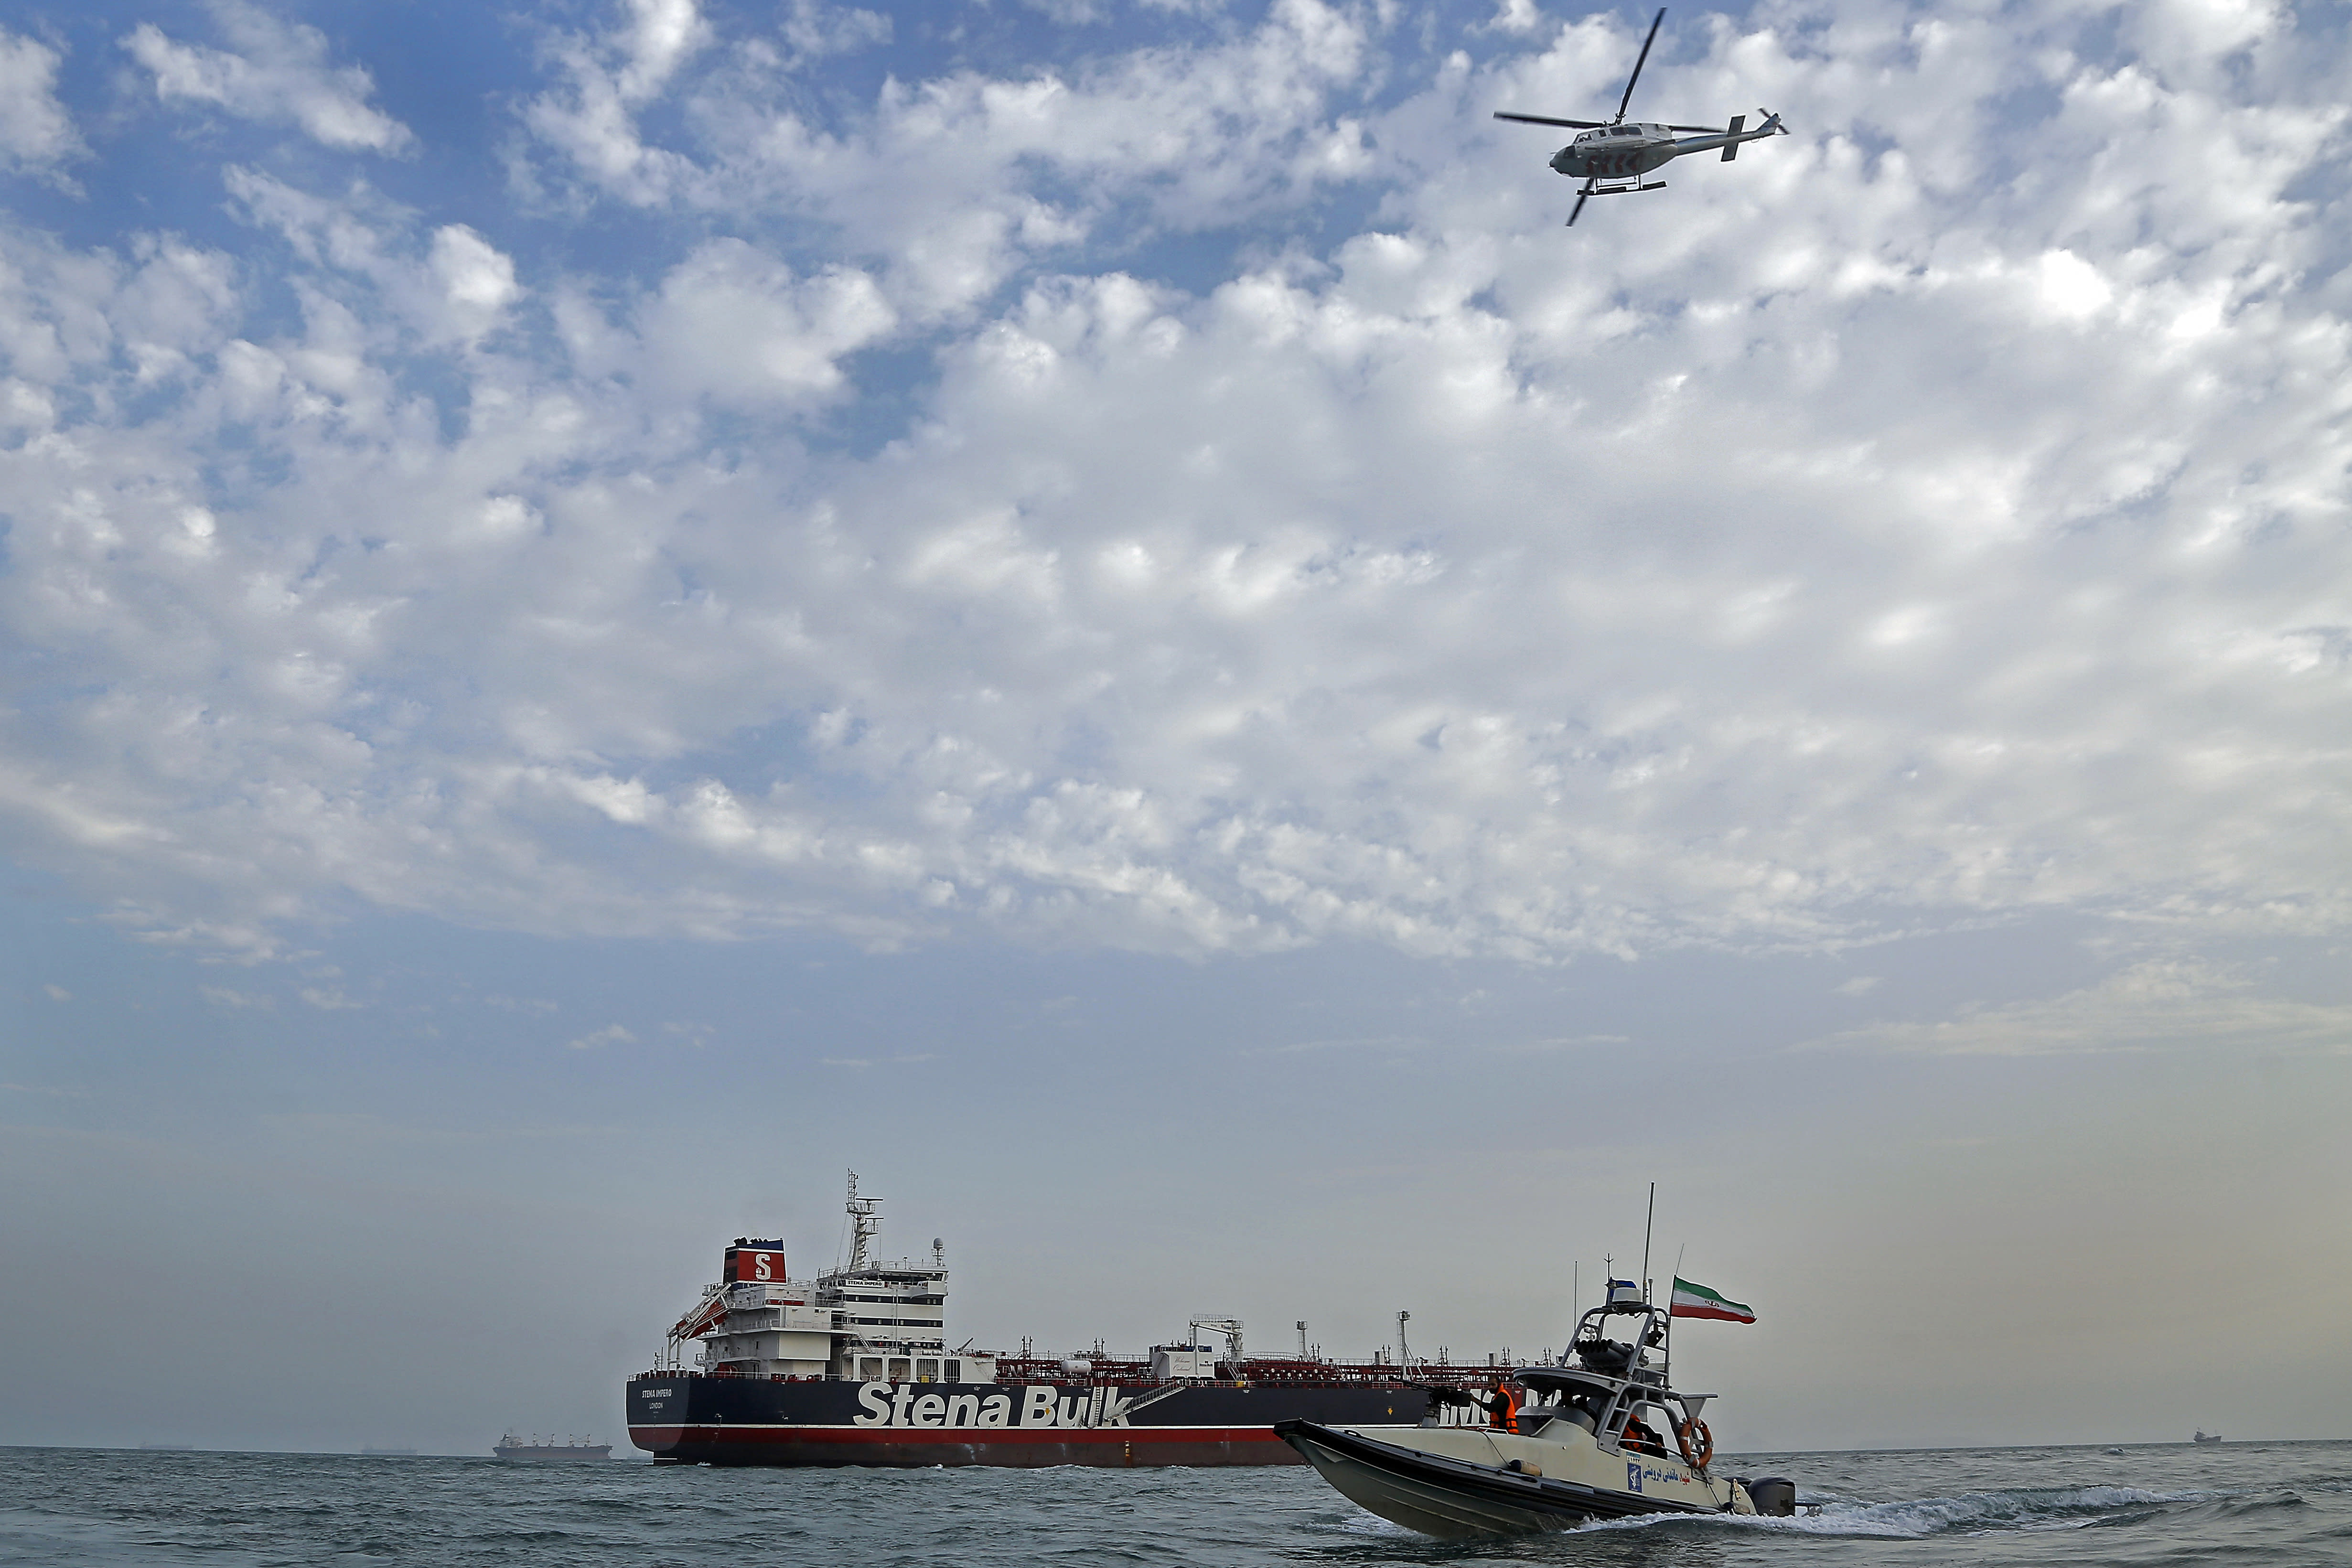 A speedboat and a helicopter of the Iran's Revolutionary Guard move around a British-flagged oil tanker Stena Impero which was seized on Friday by the Guard, in the Iranian port of Bandar Abbas, Sunday, July 21, 2019. Iranian officials say the seizure of the British oil tanker was a justified response to Britain's role in impounding an Iranian supertanker two weeks earlier off the coast of Gibraltar, a British territory located on the southern tip of Spain. (Hasan Shirvani/Mizan News Agency via AP)